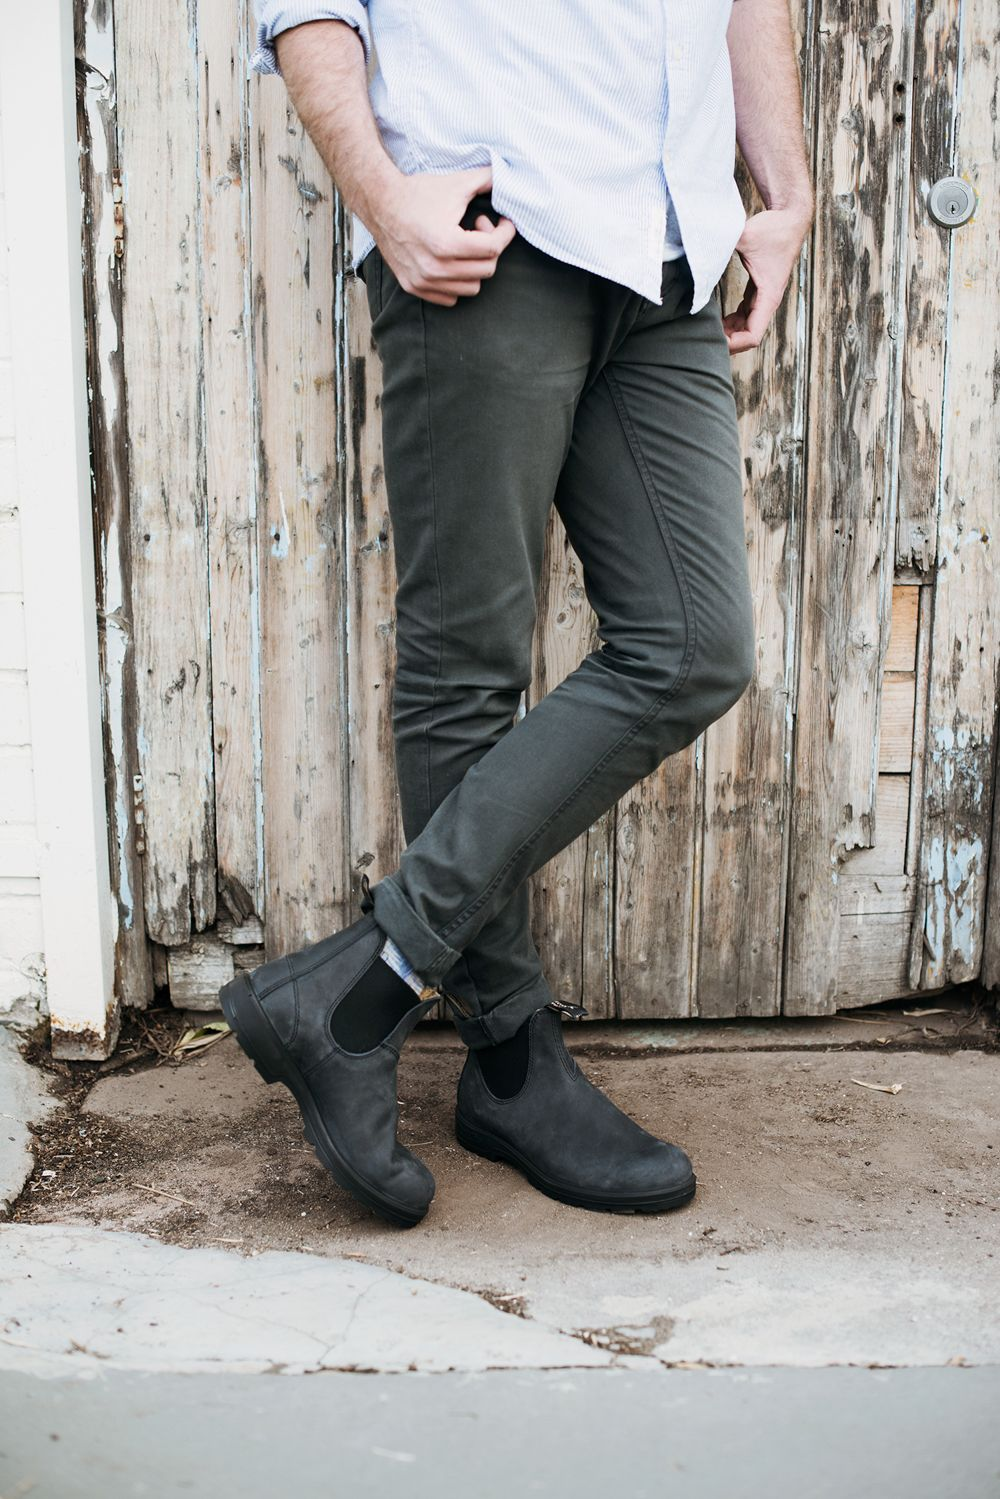 In A Cool Rustic Black Leather The 587 Brings An Edgy Style To Your Look The Weathered Appearance Gives A Bit Of Boots Outfit Men Blundstone Blundstone Boots